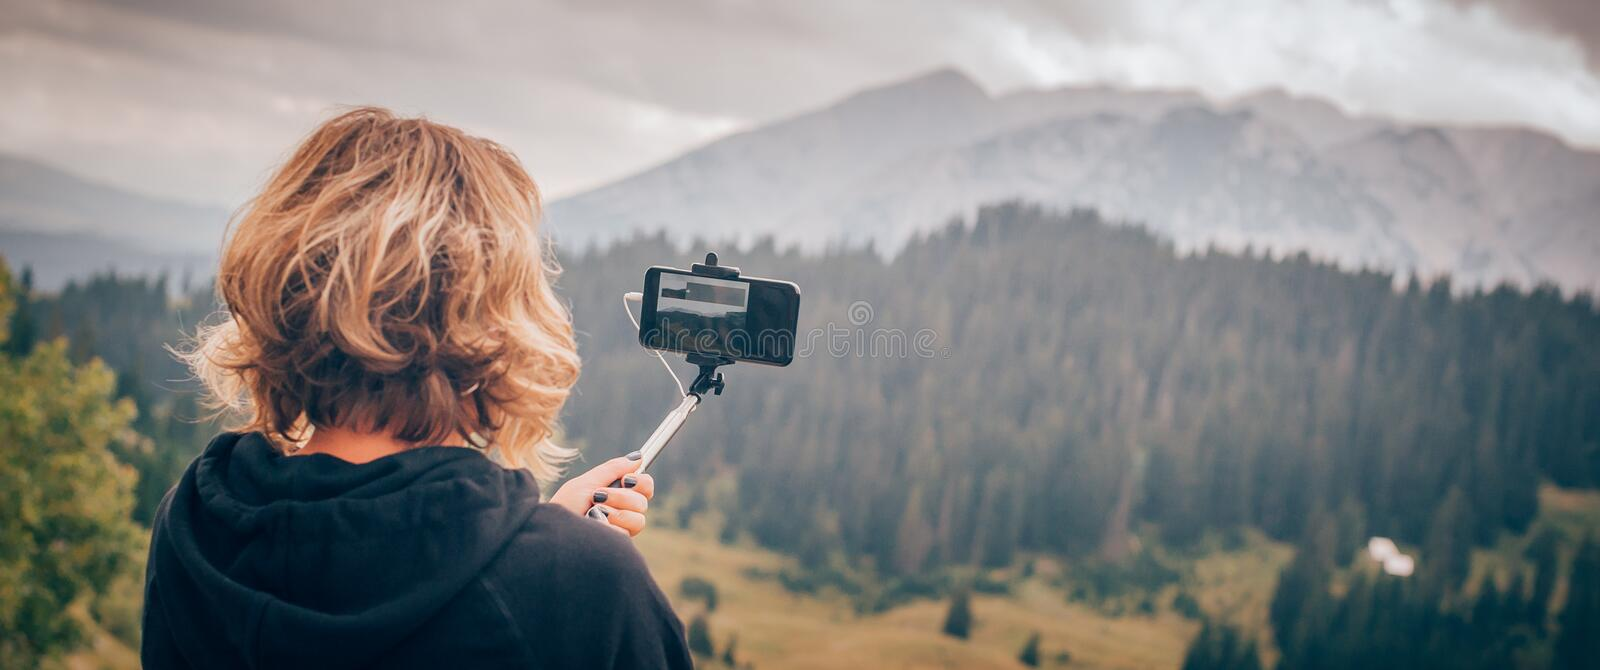 Woman taking panoramic picture of mountain landscape. Selfie photo stick royalty free stock photos